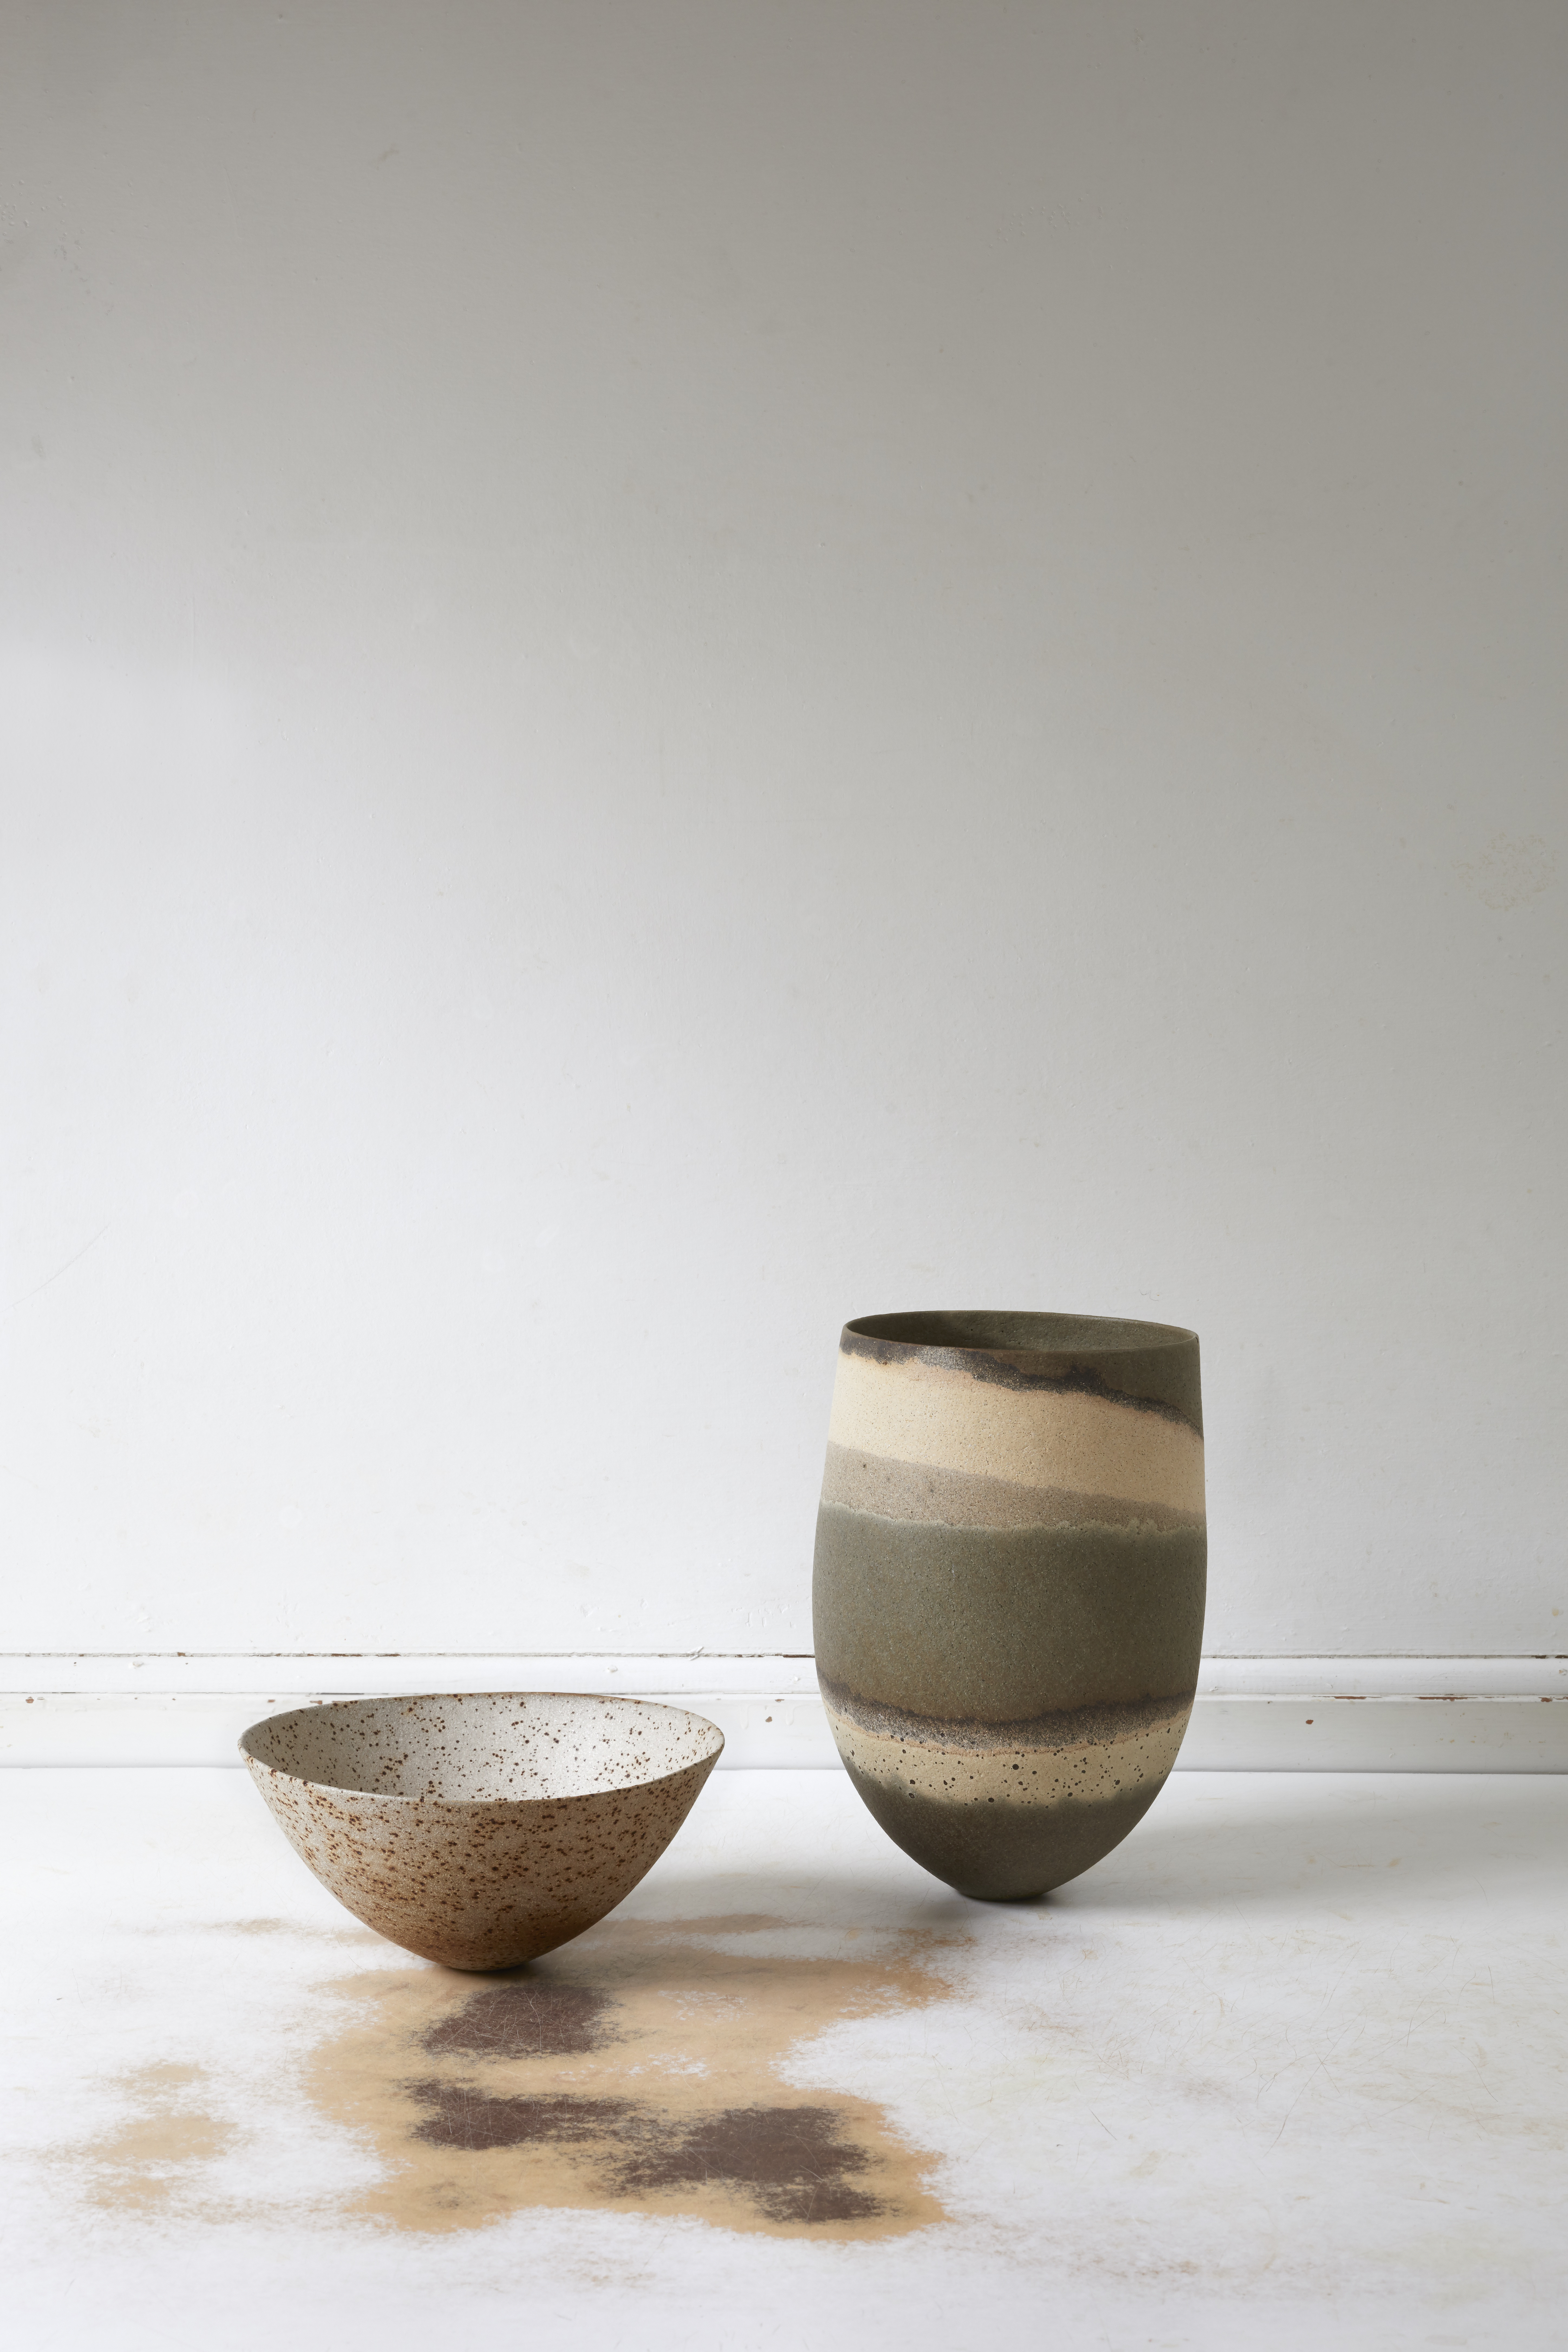 Jennifer Lee: the potter's space – Events – Kettle's Yard